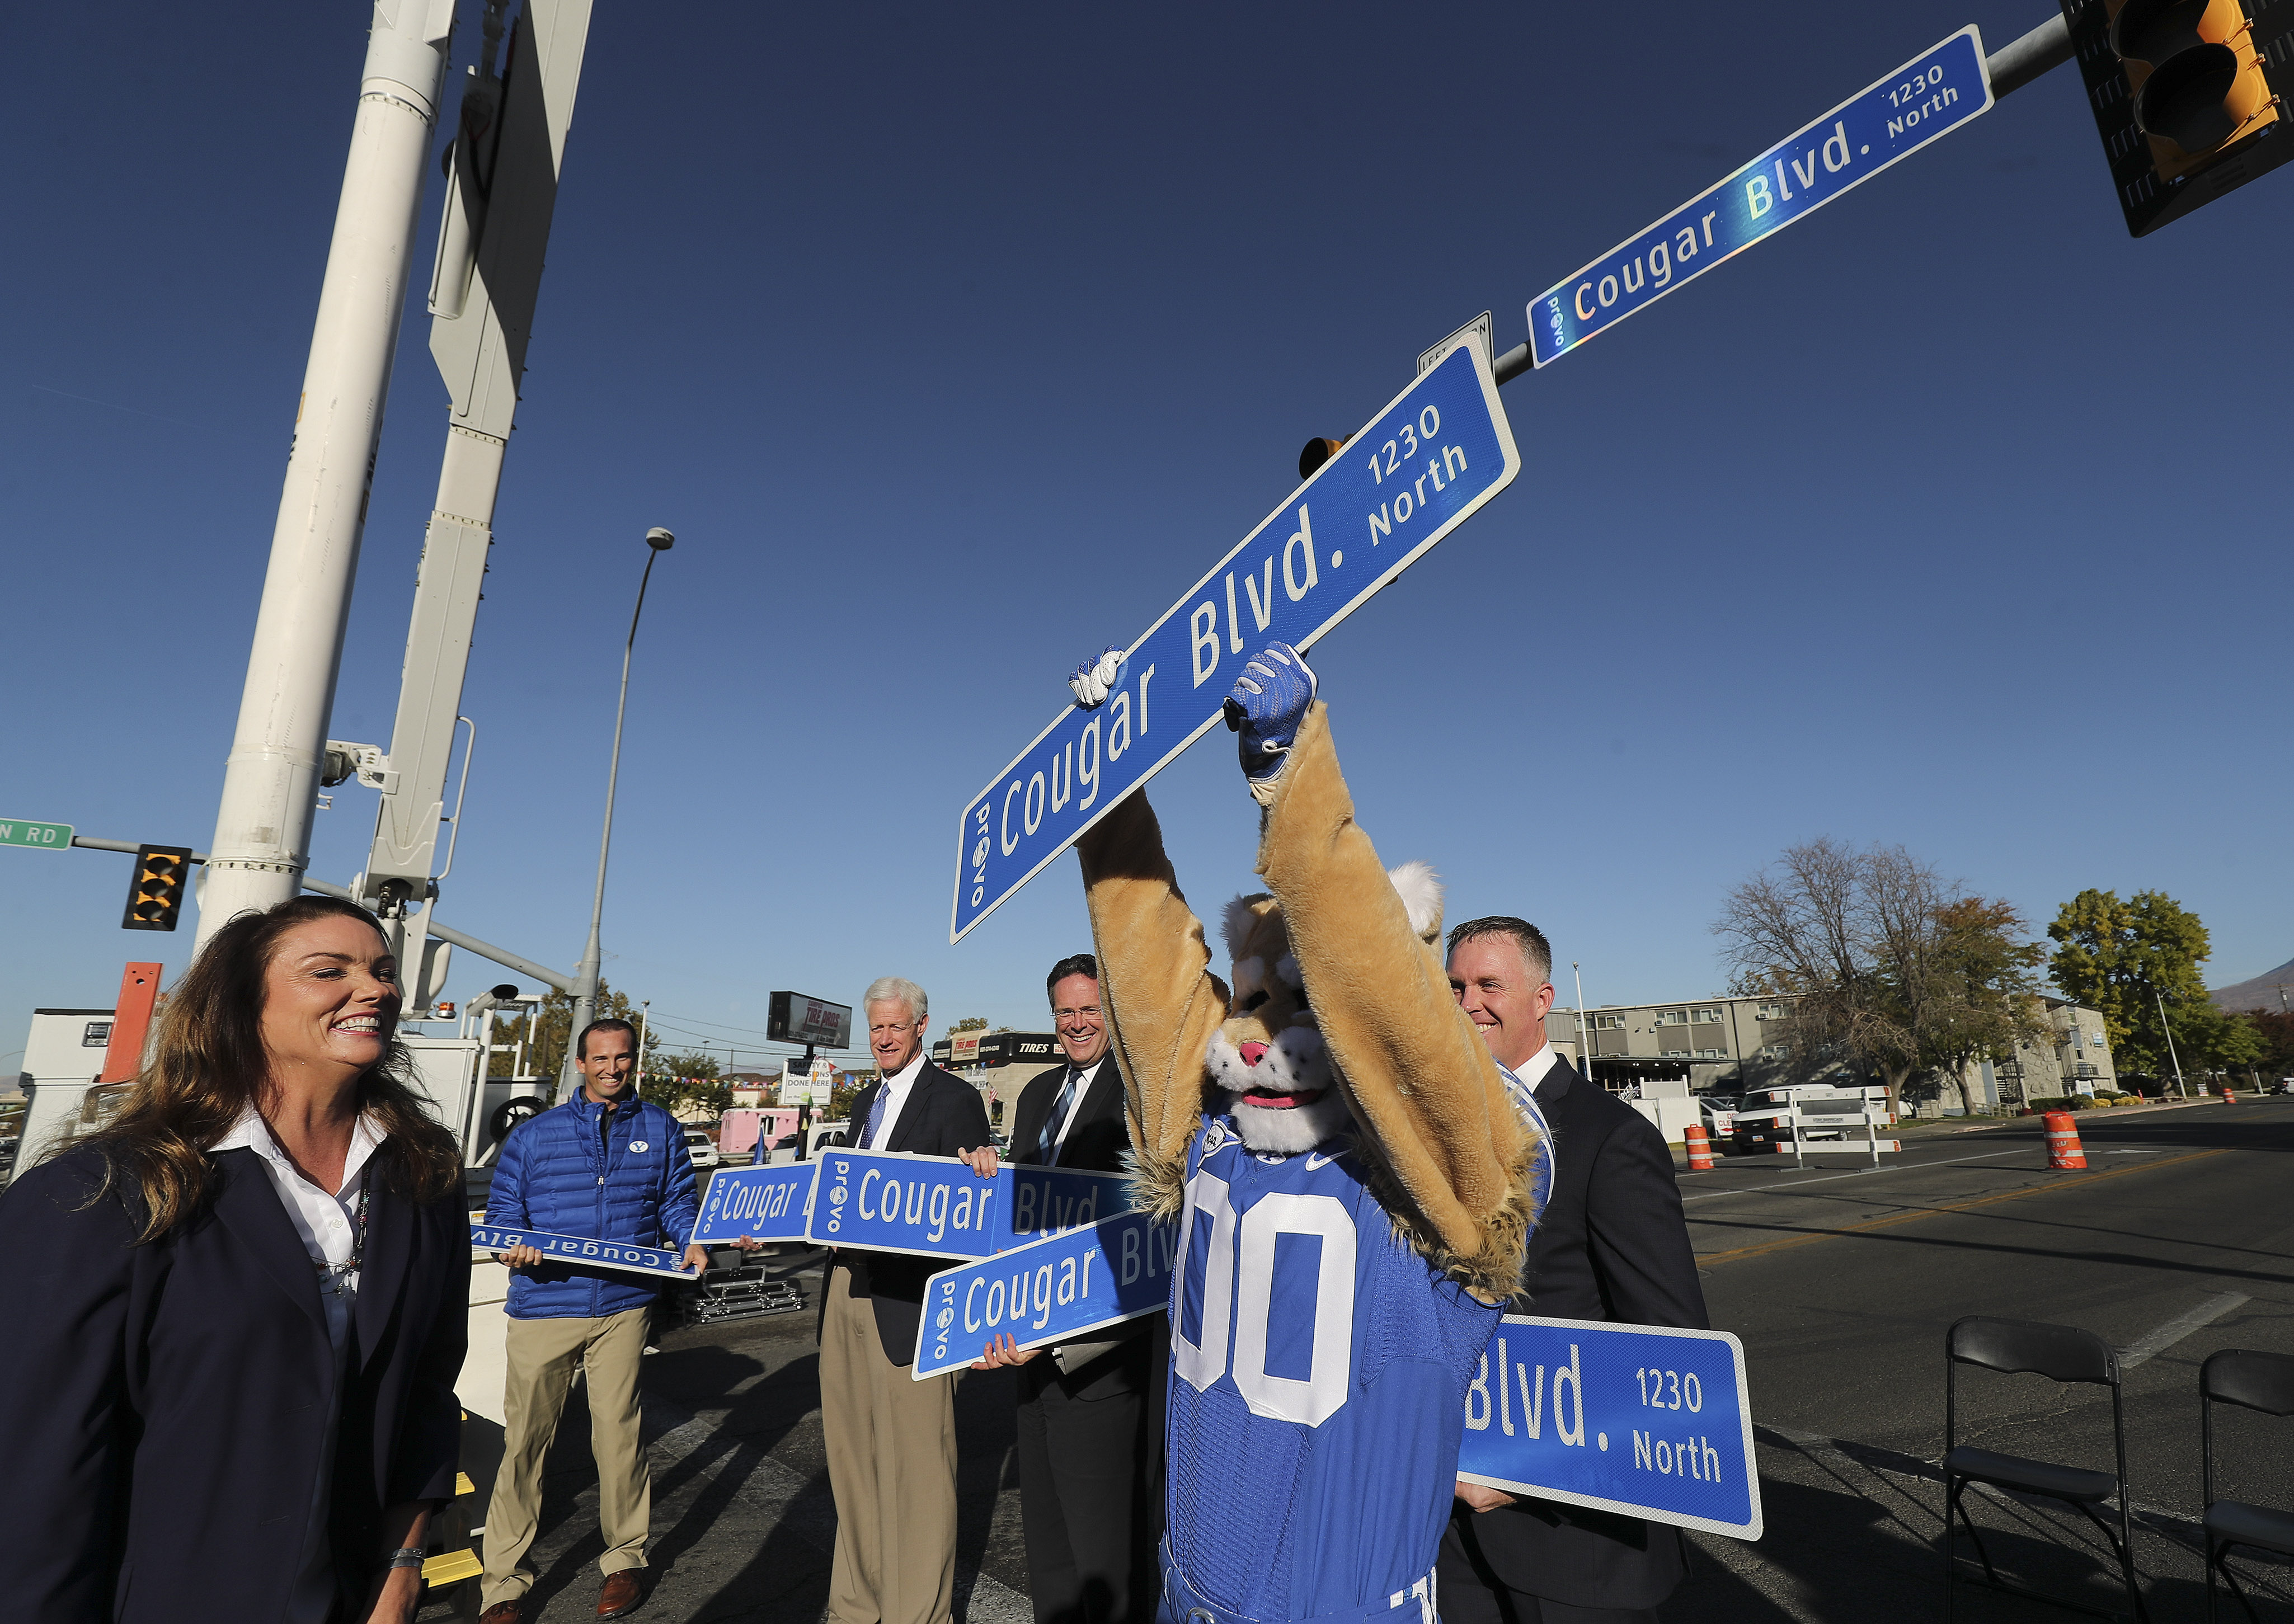 Provo Mayor Michelle Kaufusi, left, Cosmo, Brigham Young University's mascot, and others celebrate the unveiling of Cougar Boulevard during a ceremony in Provo on Wednesday, Oct. 16, 2019. The road, which used to be Bulldog Boulevard (1230 North), was renamed to mark the 144th anniversary of the founding of the university, which is celebrating homecoming this week.